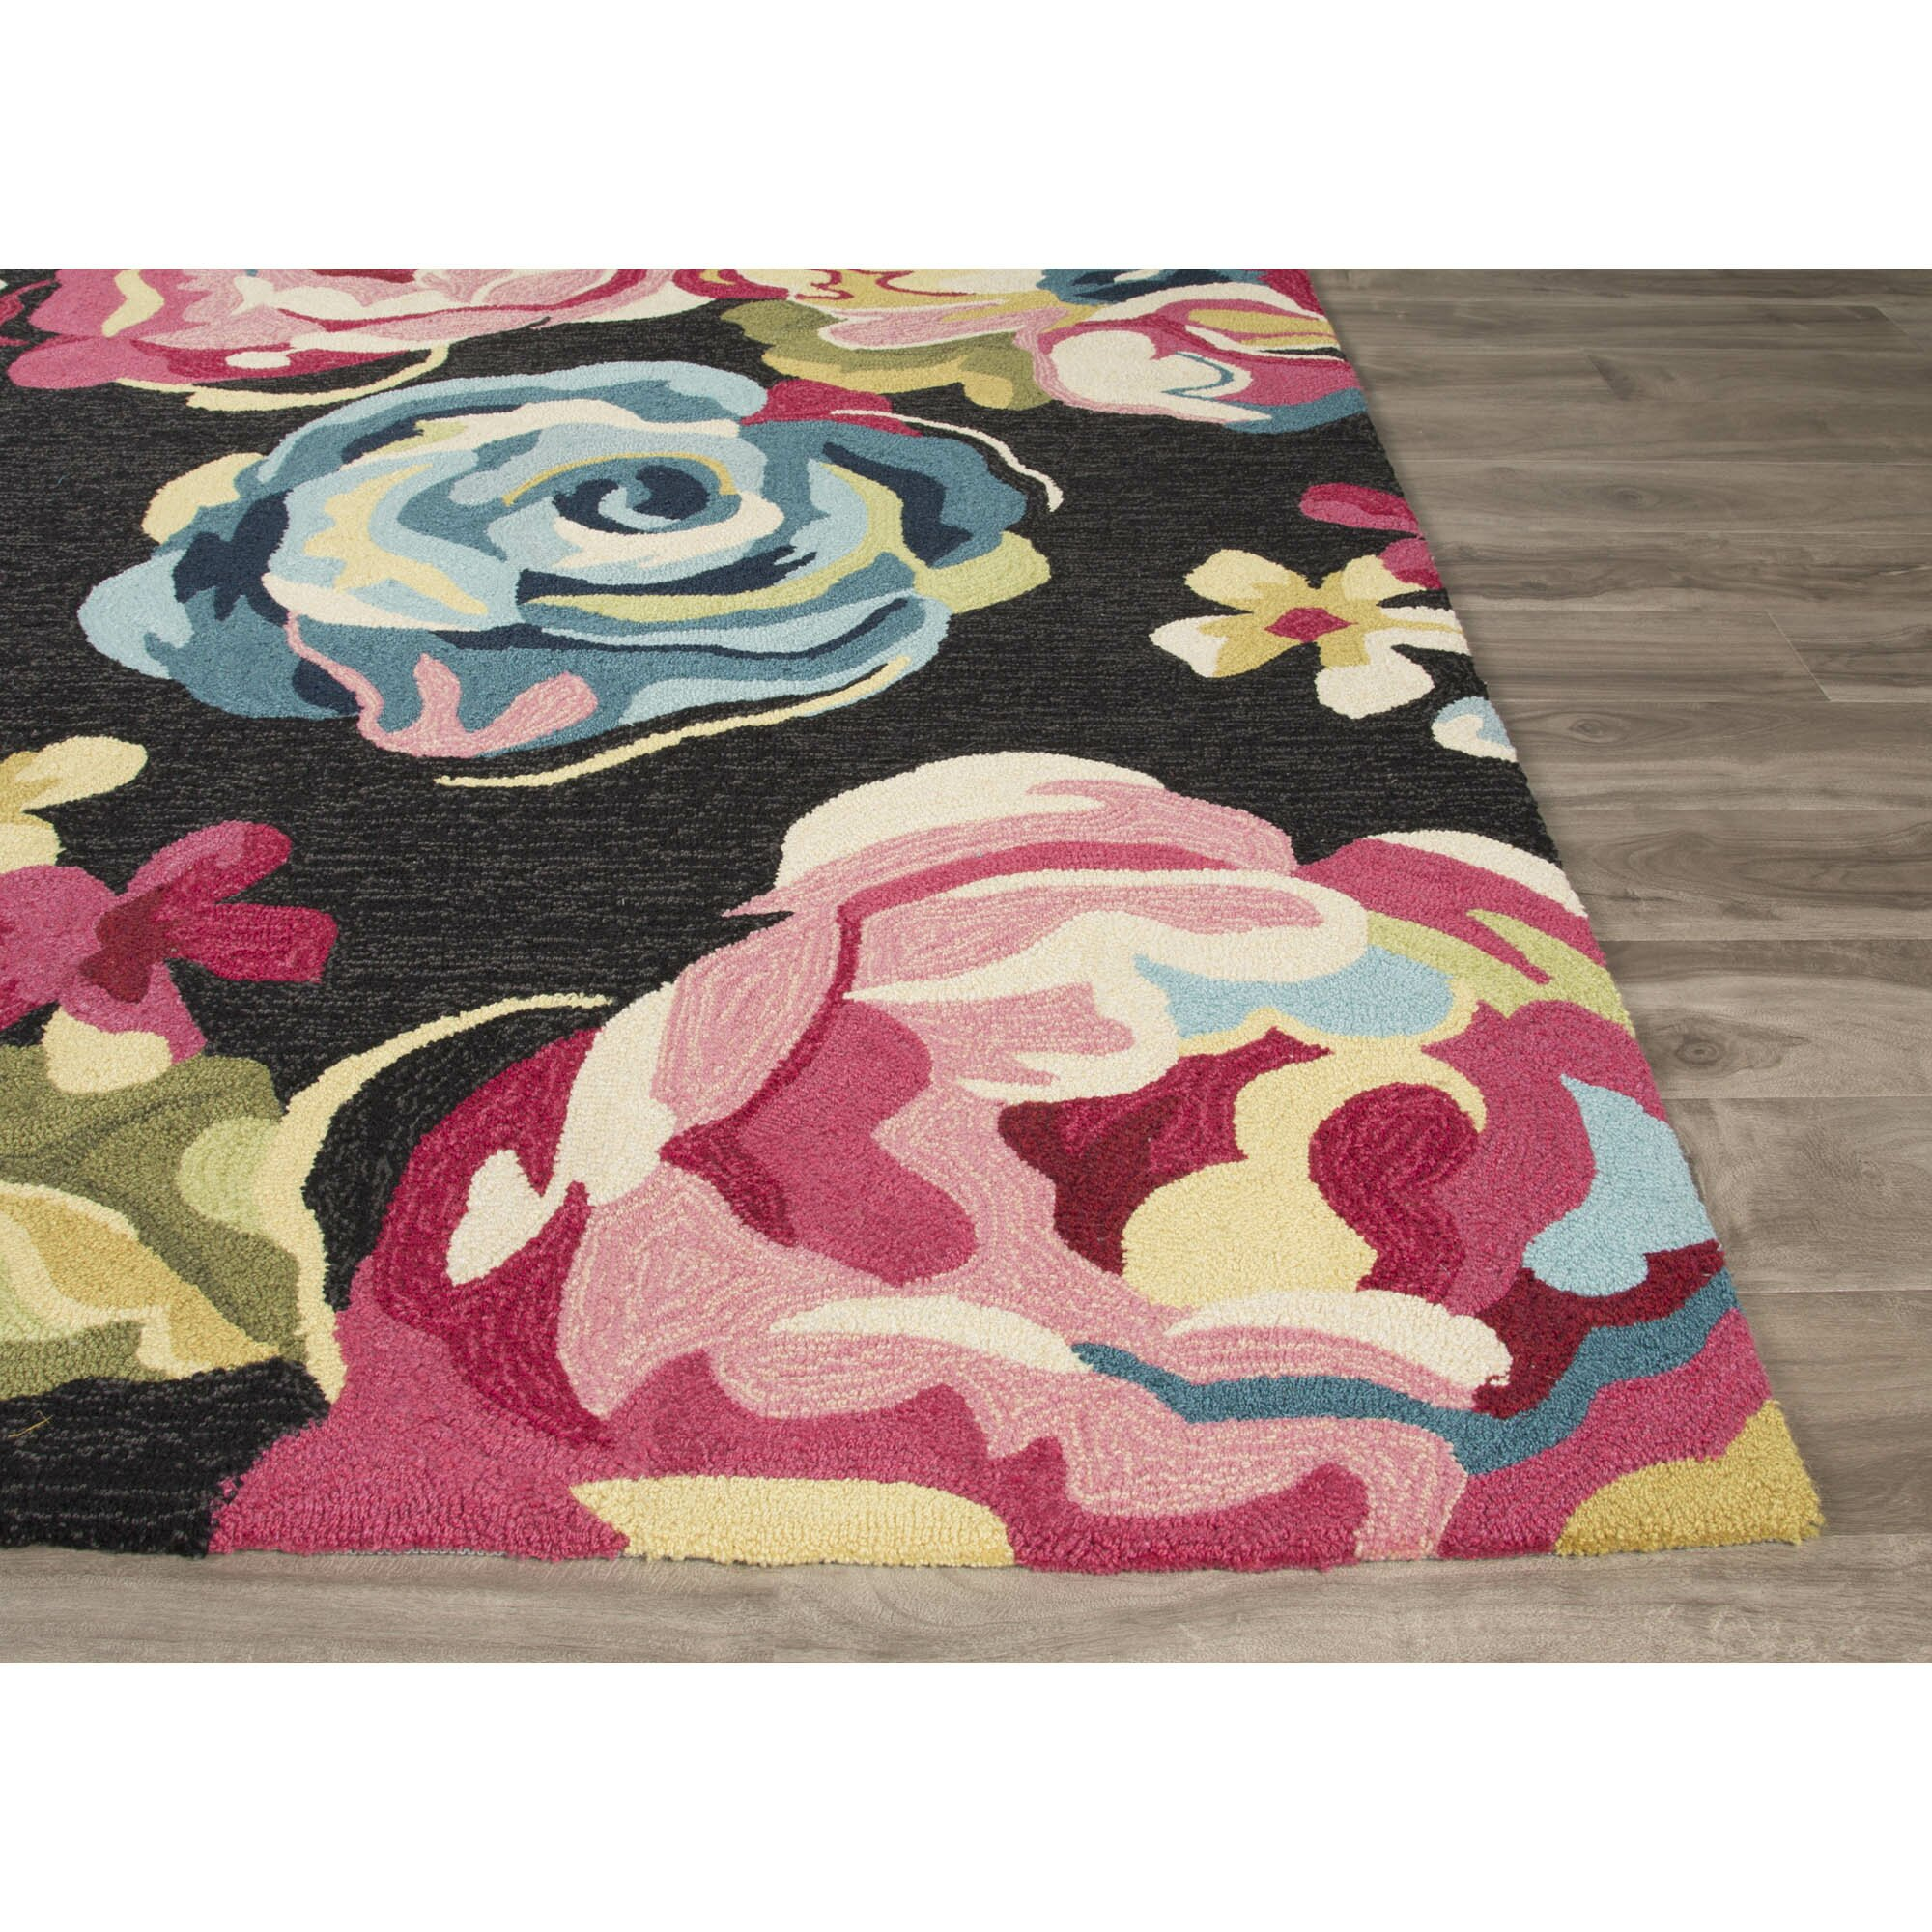 Jaipurliving Flora Hand Tufted Black Pink Area Rug Wayfair